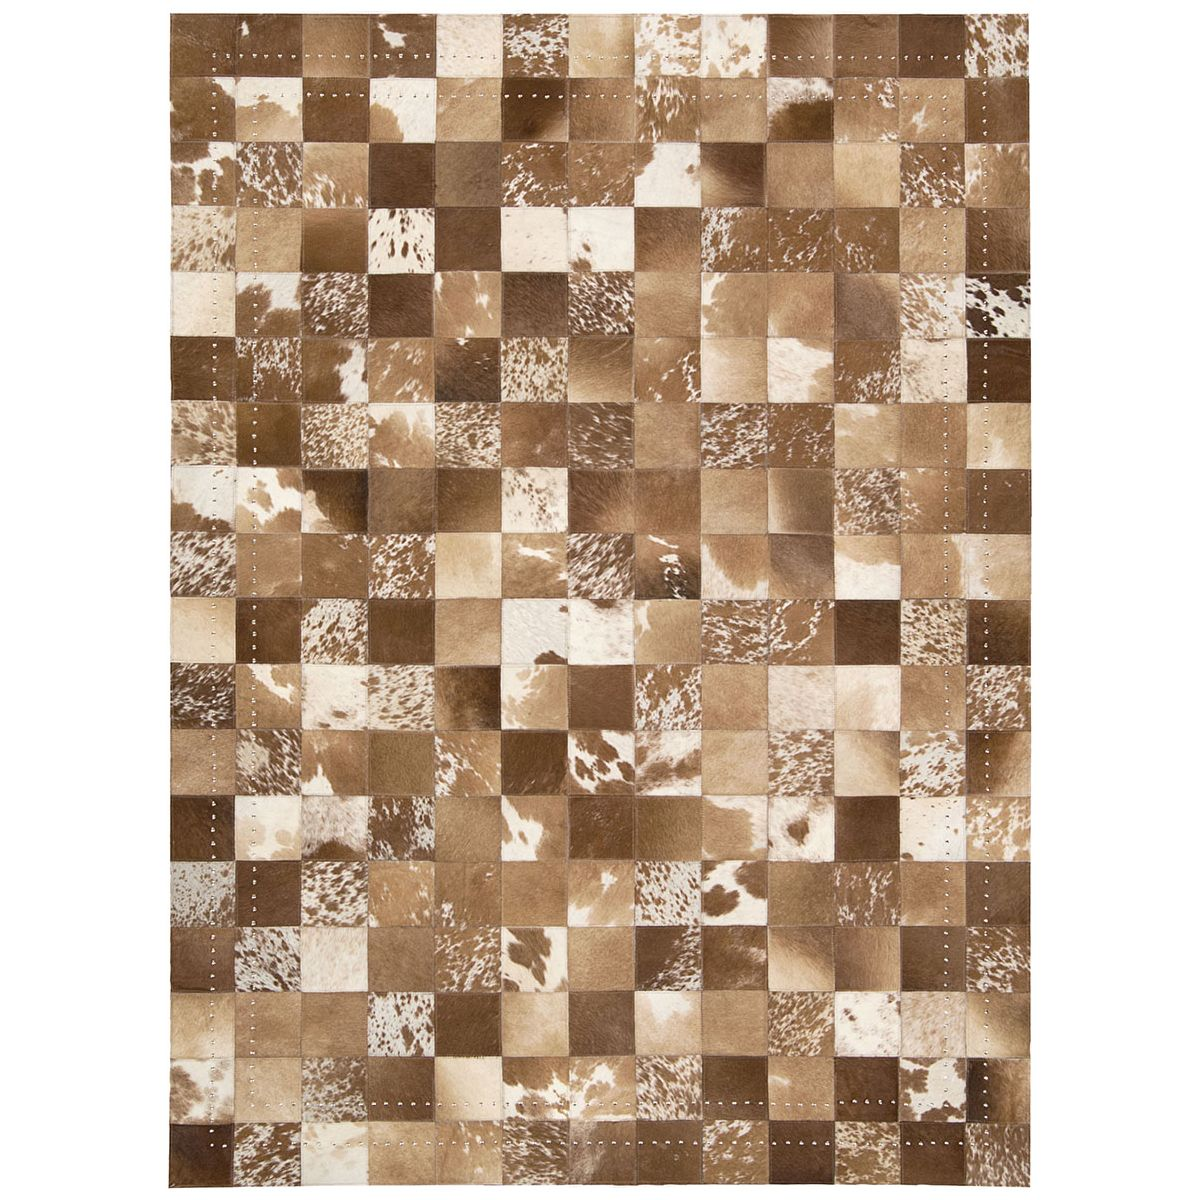 NourisionBbl4: Medley Area Rug Collection 19028